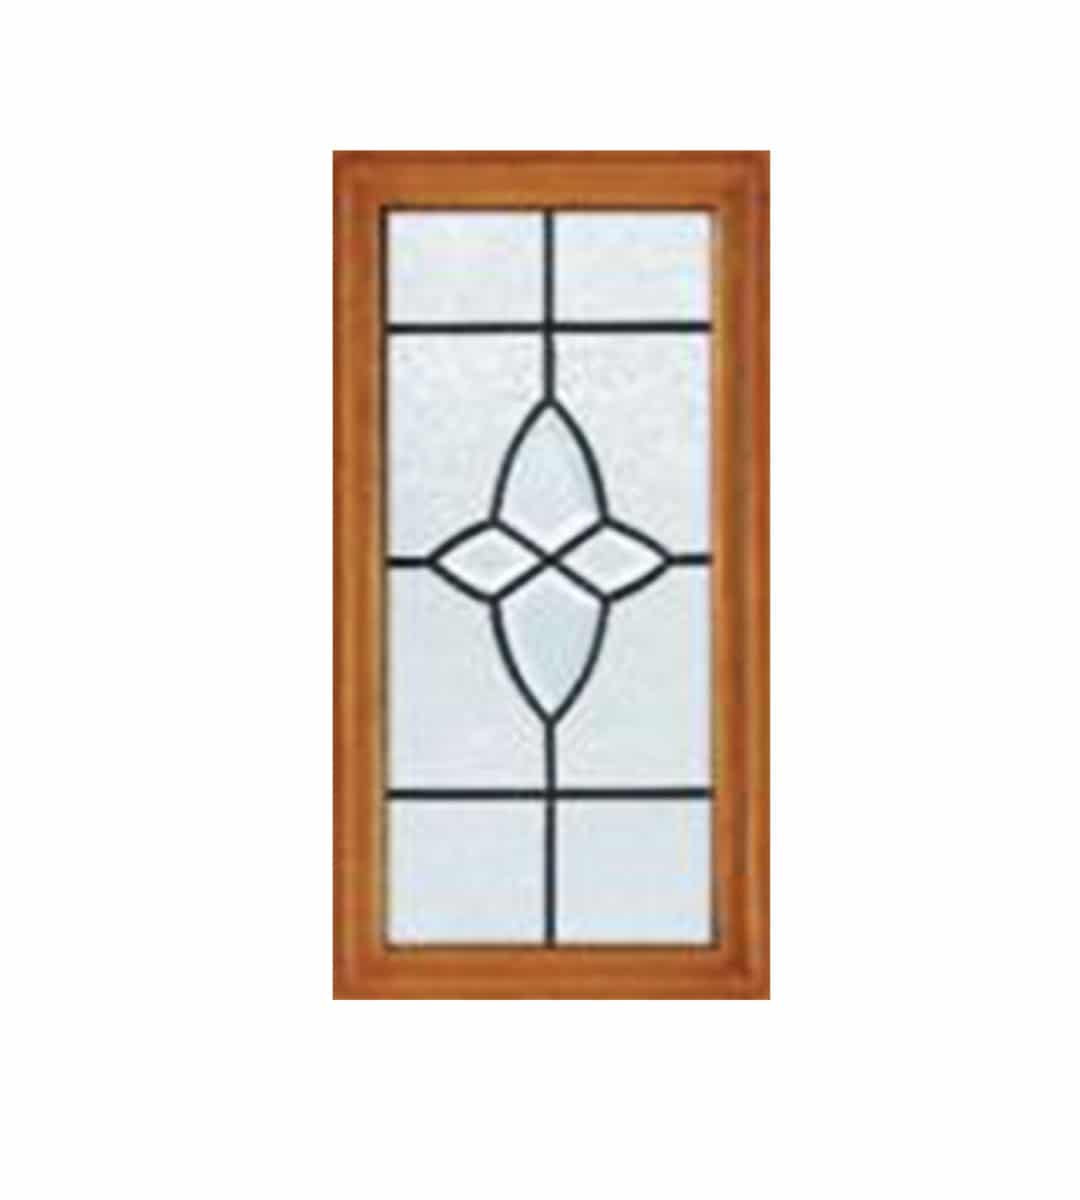 m&t cottage hardwood exterior door closeup glass glazing